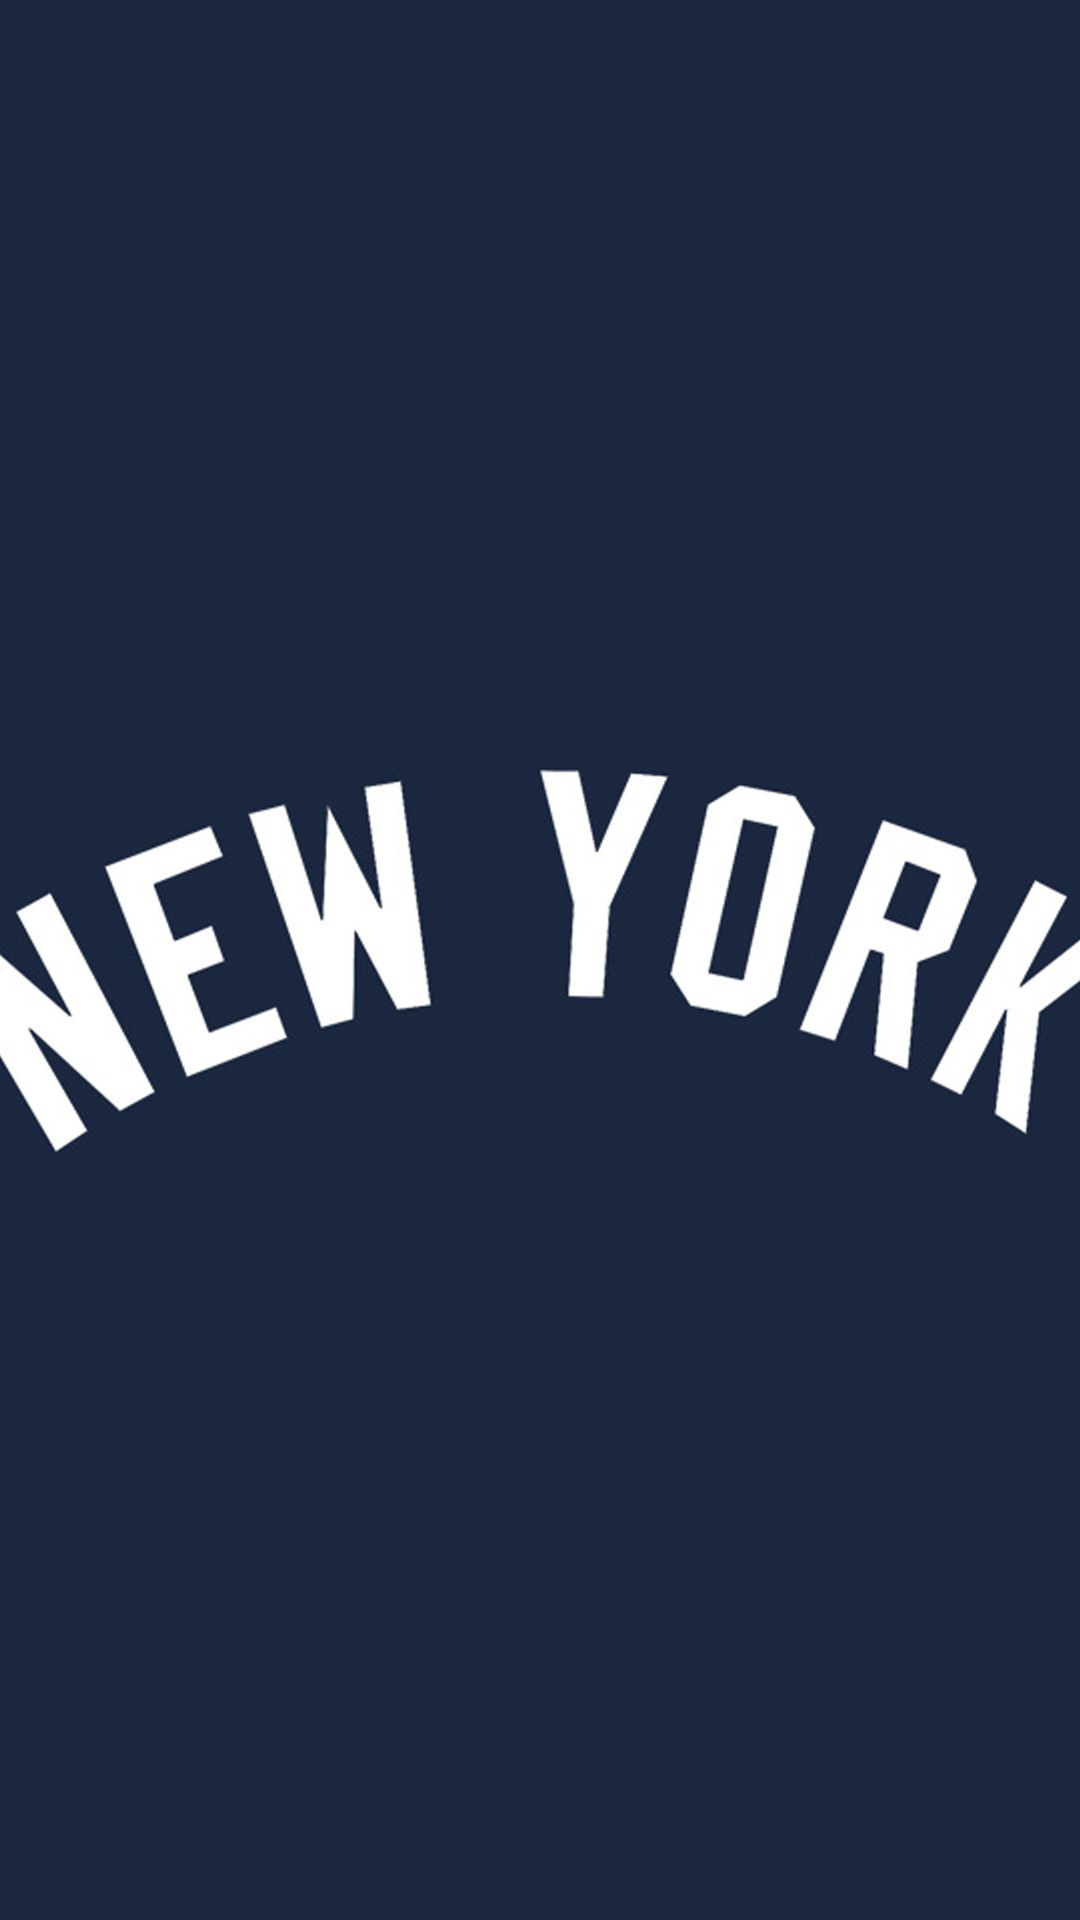 1080x1920 New York Yankees Wallpaper - (47+) Wallpaper Collections